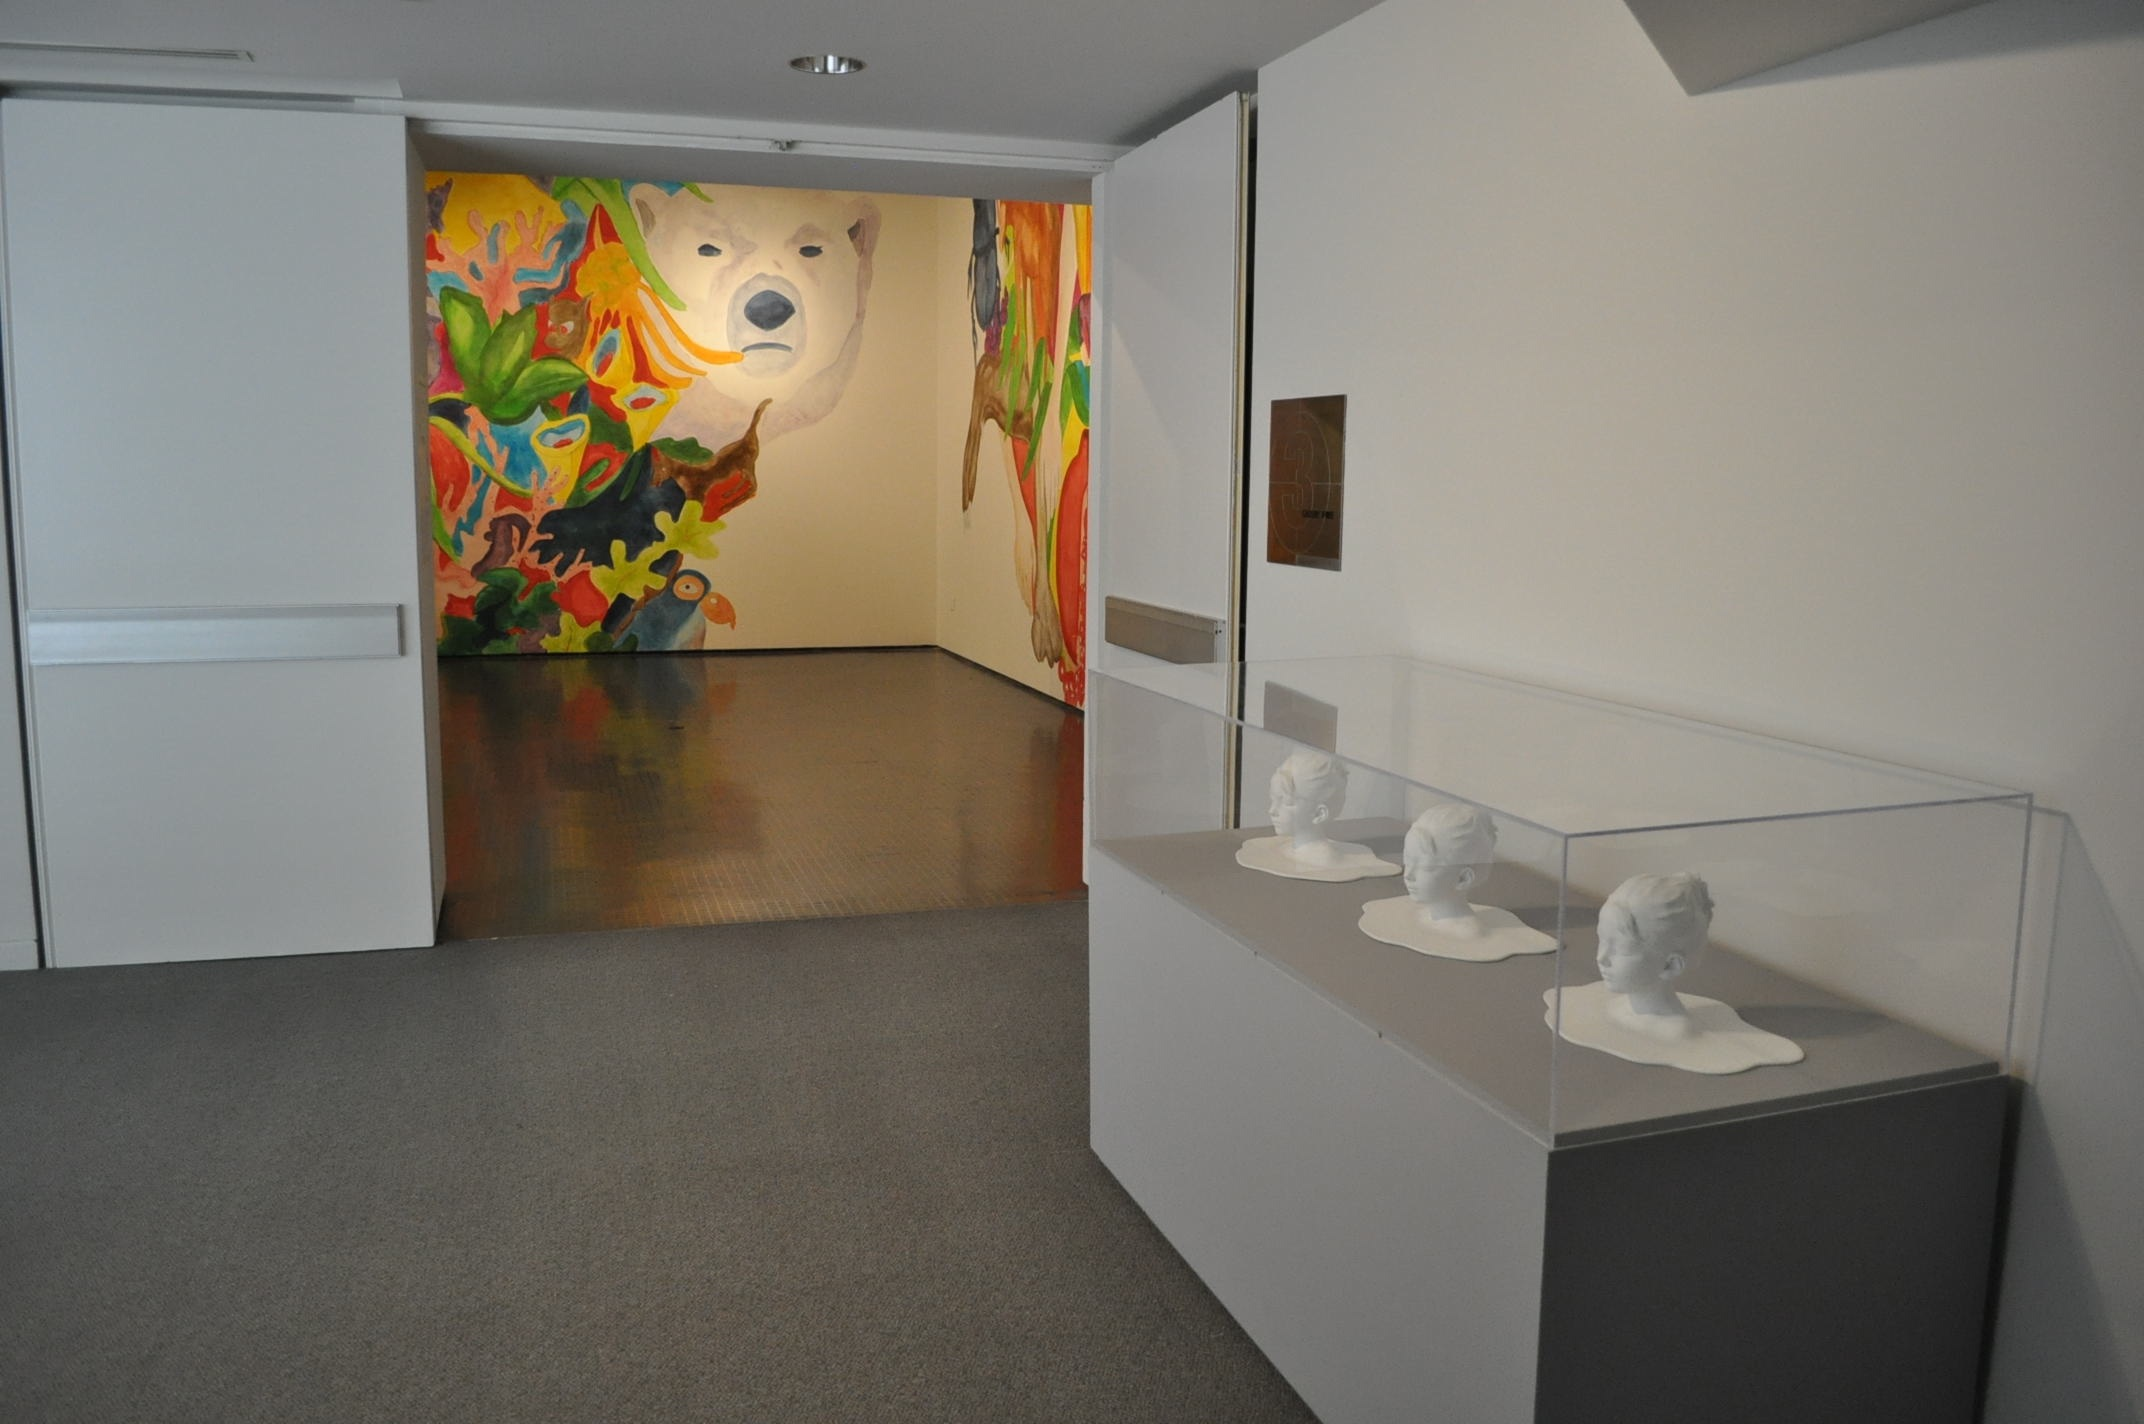 Exhibition view, photo Phocasso/J.W. White and Yerba Buena Center for the Arts